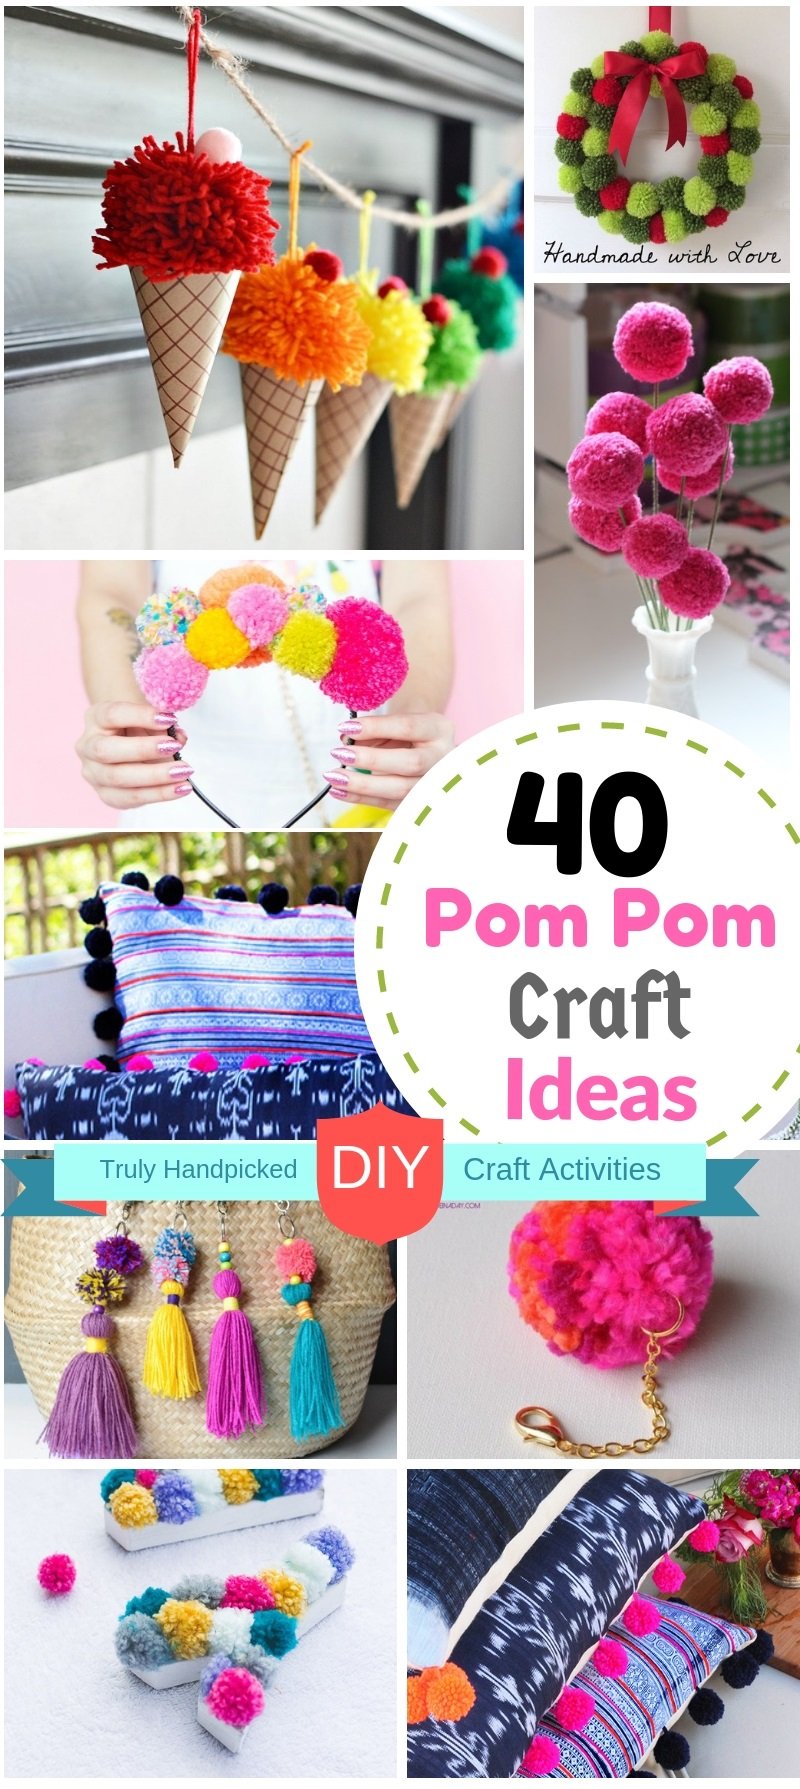 40 Diy Pom Pom Crafts Ideas For Home Decor Make And Sell Ideas